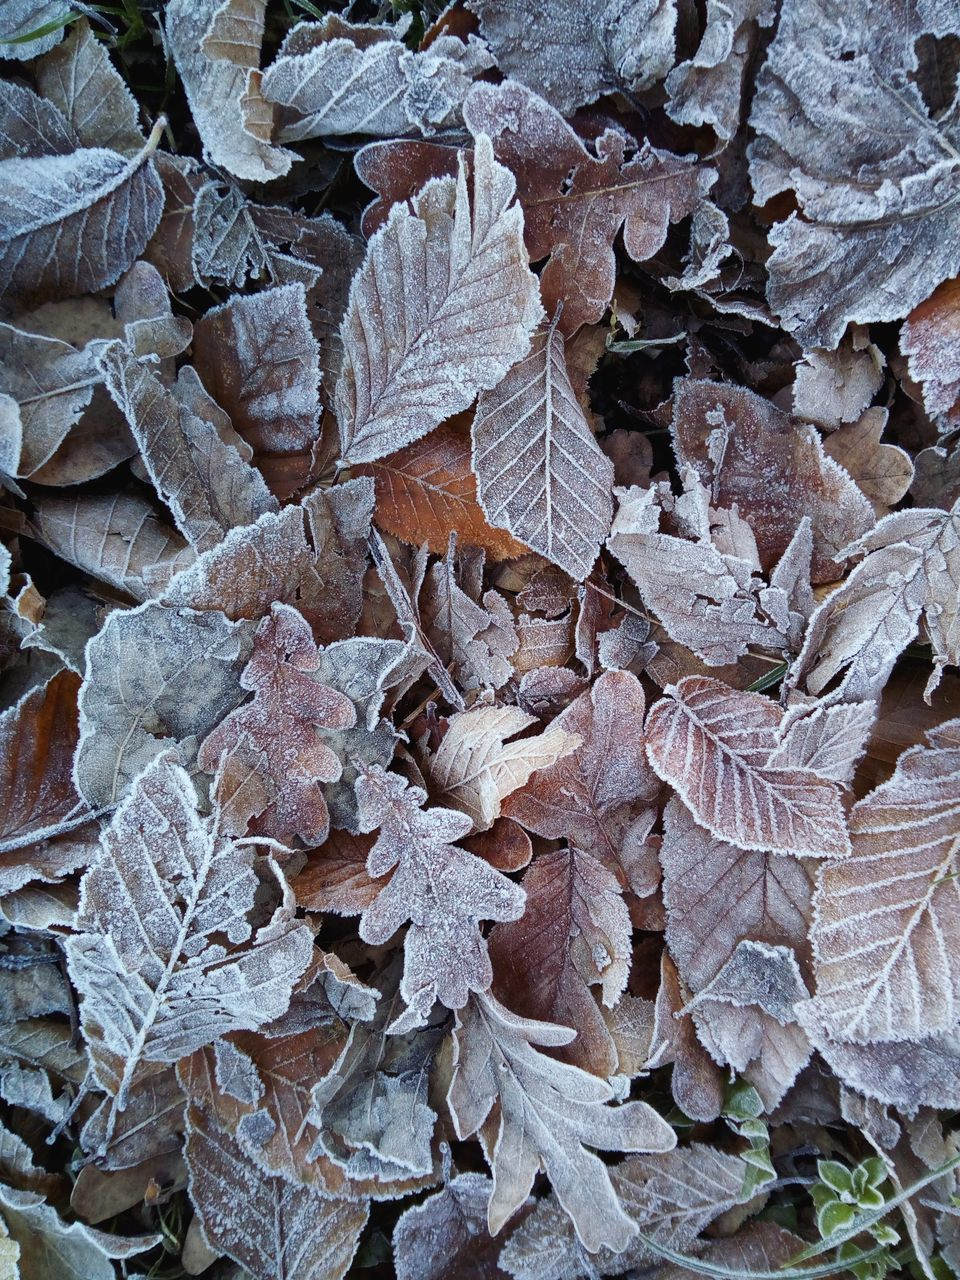 leaf, plant part, full frame, backgrounds, nature, close-up, leaves, no people, plant, dry, day, beauty in nature, fragility, frost, growth, abundance, vulnerability, land, cold temperature, high angle view, change, outdoors, ice